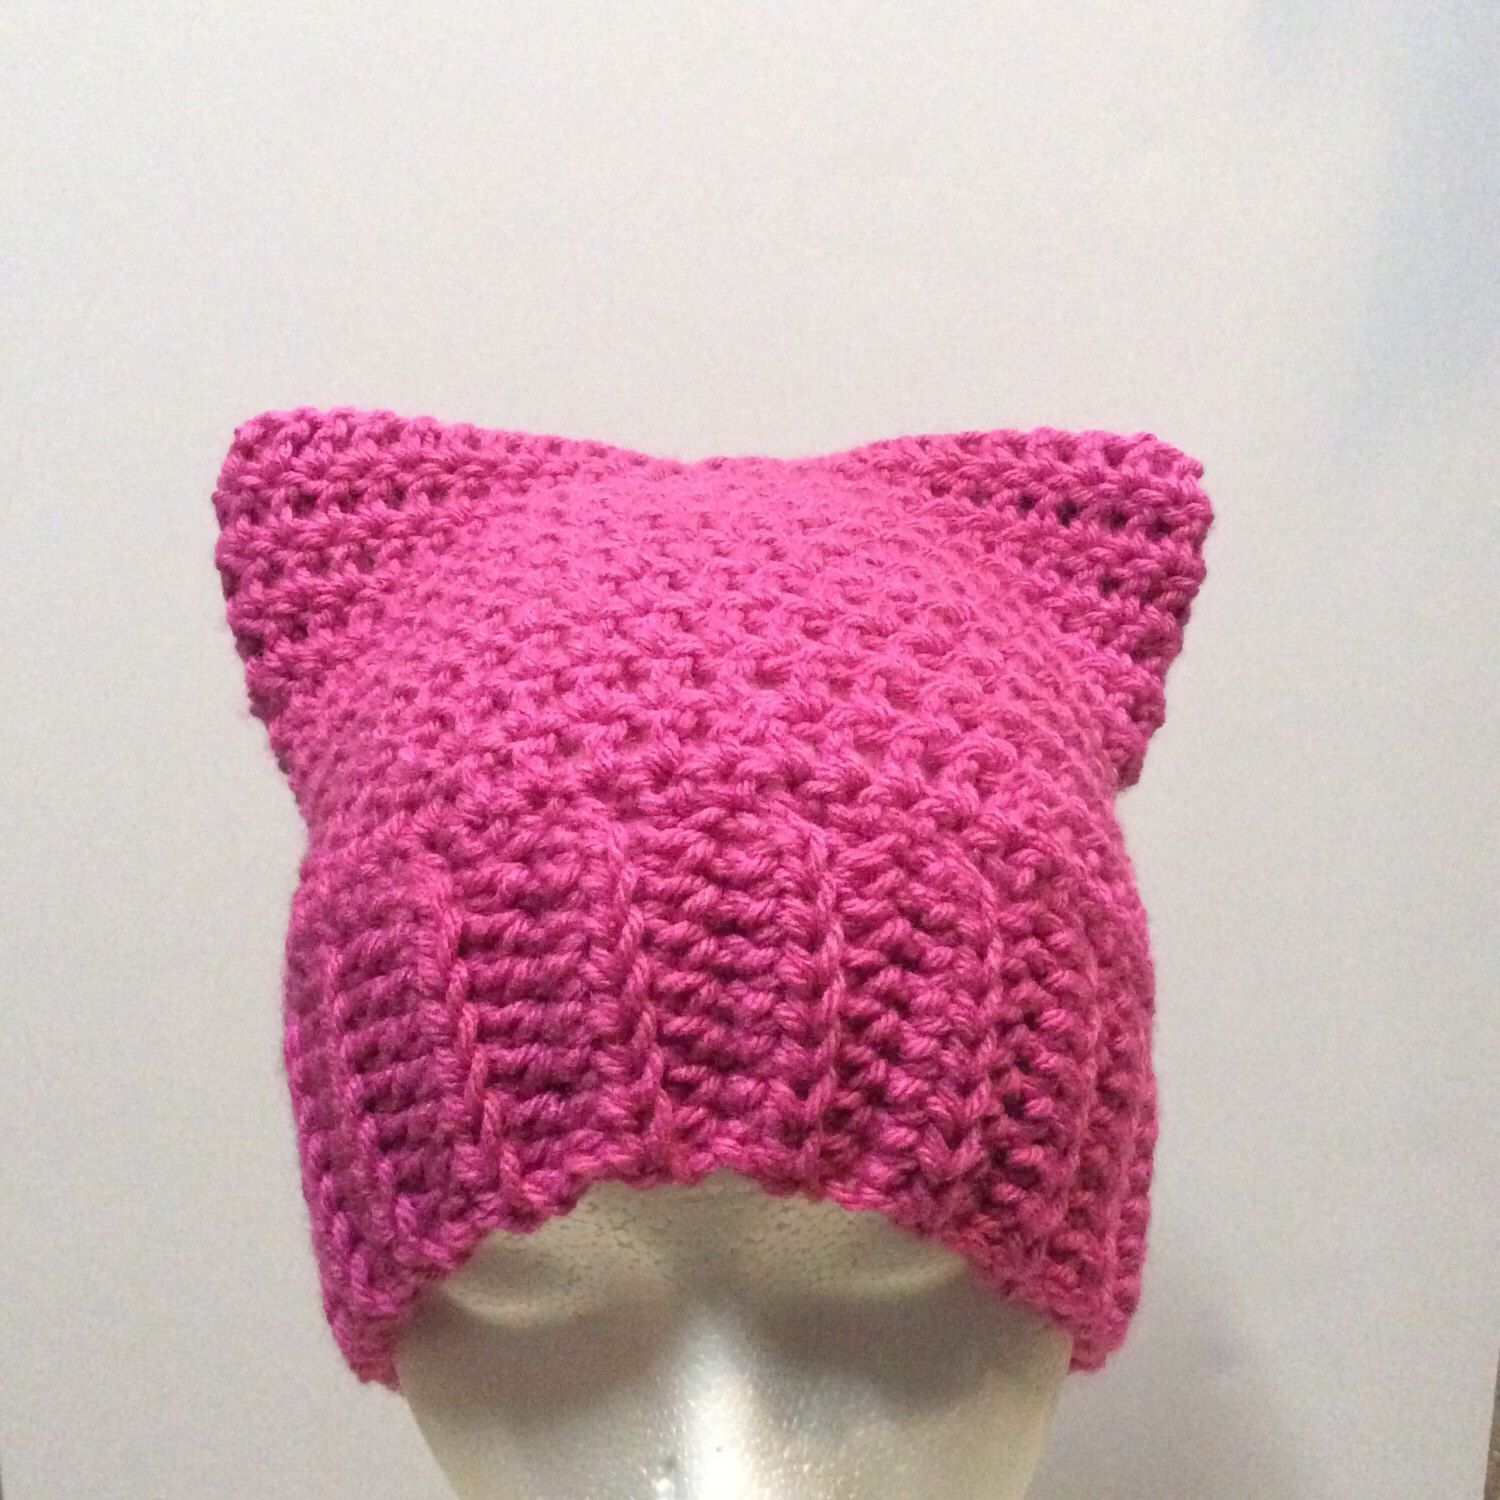 Pink Cat Hat, Hat With Cat Ears, Pussycat Hat, Kitty Cat Beanie by BarberrySparrow on Etsy https://www.etsy.com/listing/493471446/pink-cat-hat-hat-with-cat-ears-pussycat